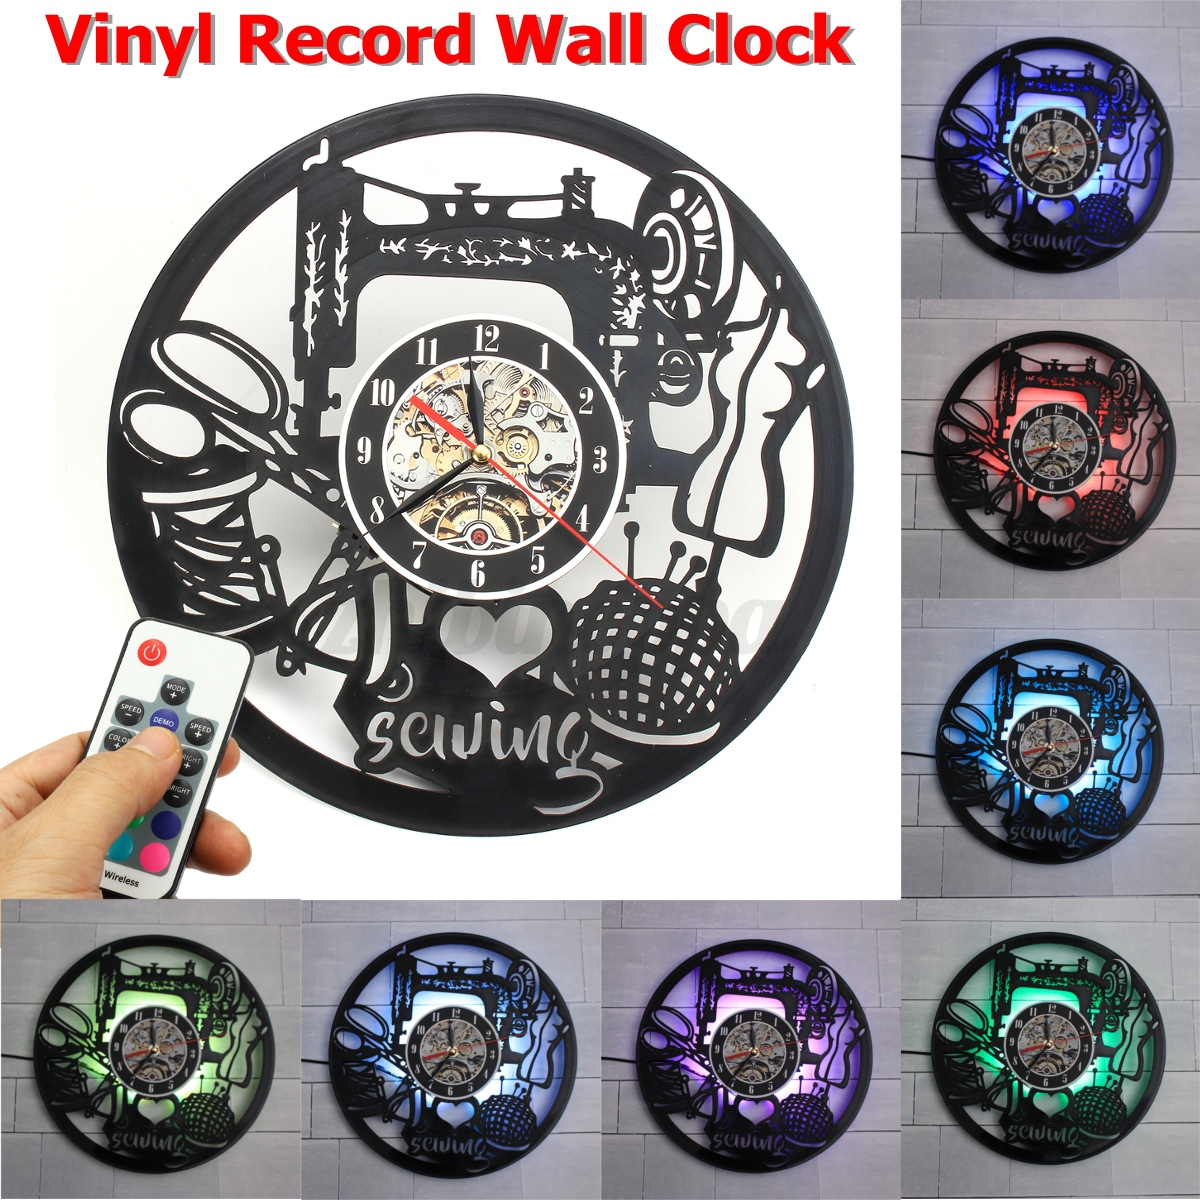 7 colors led change 3d retro vinyl record wall clock home for Vinyl record wall art